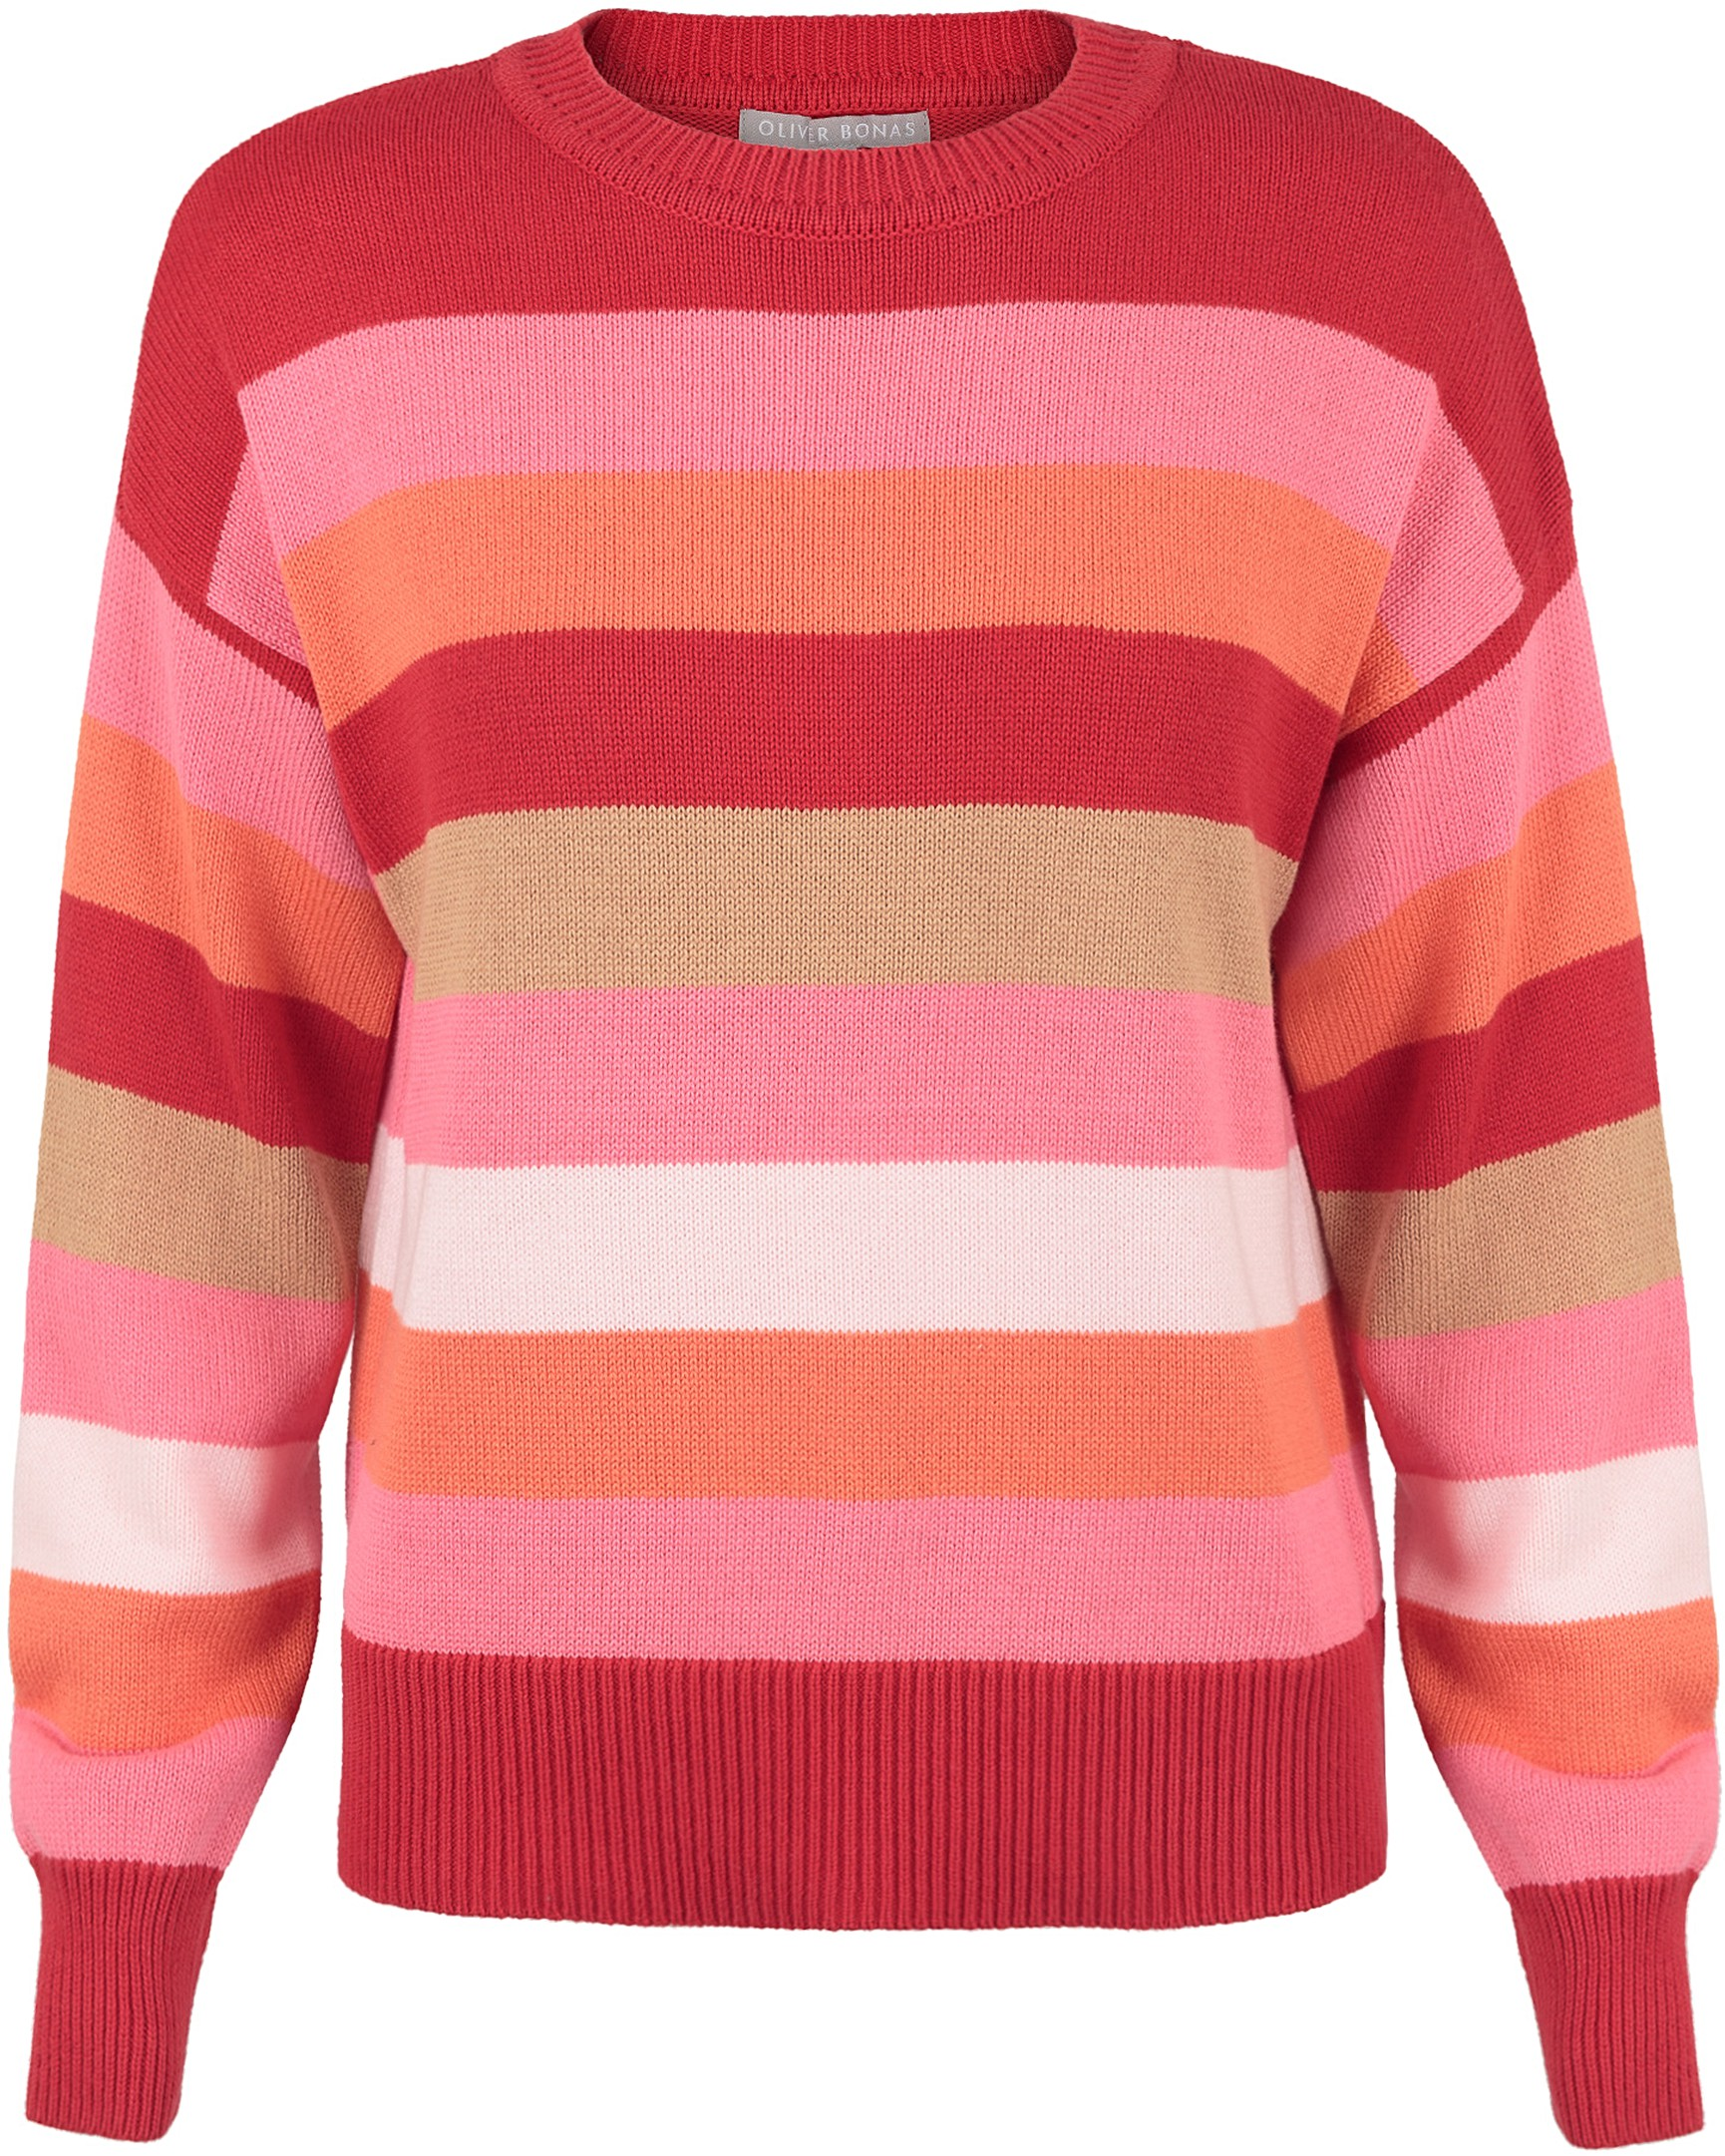 5852fa7787 Knitwear | Women's Knitted Jumpers & Dresses | Oliver Bonas